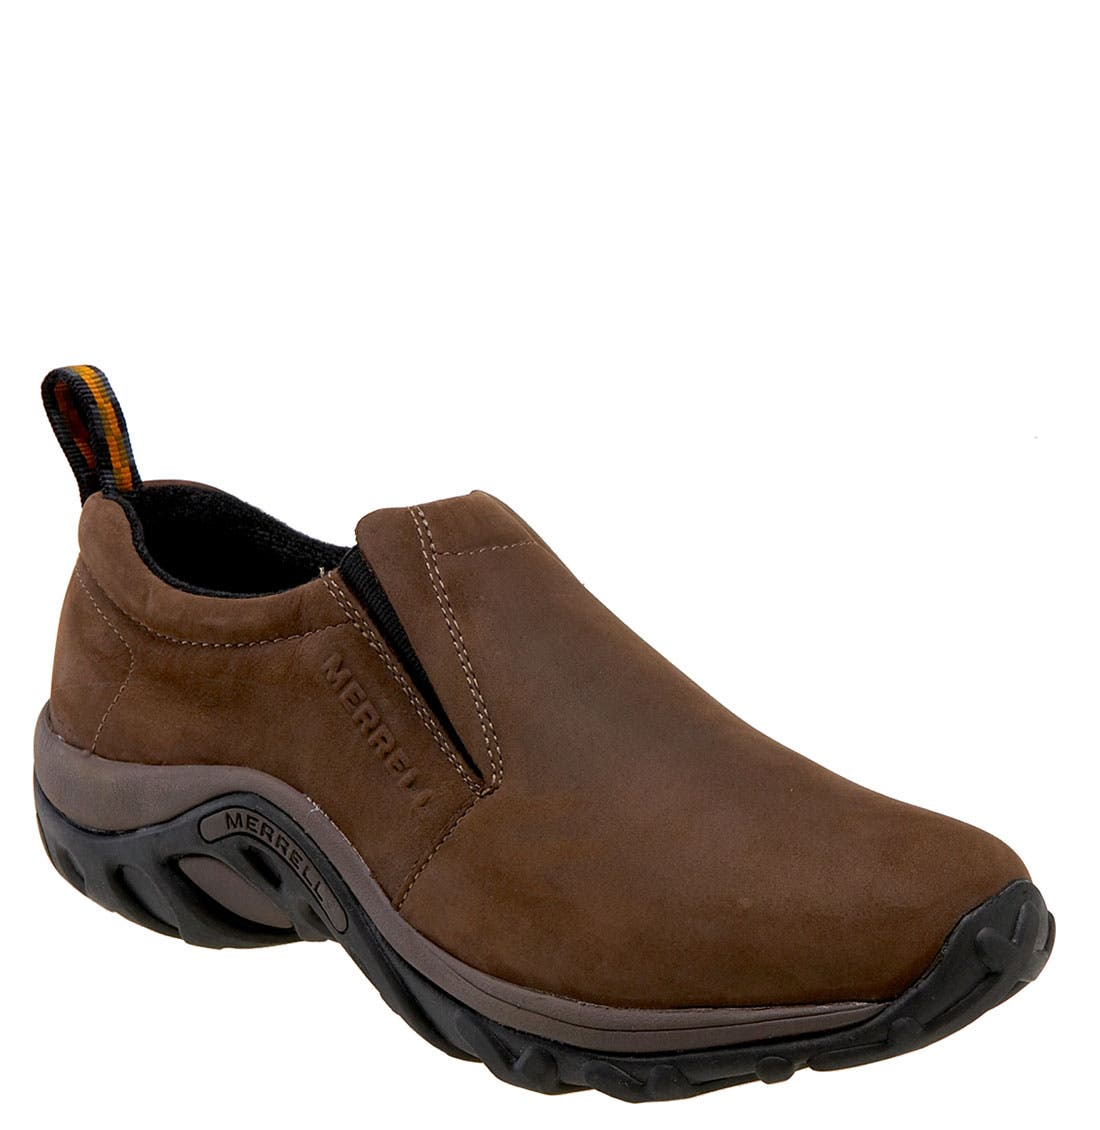 MERRELL, 'Jungle Moc - Nubuck' Slip-On, Main thumbnail 1, color, Brown